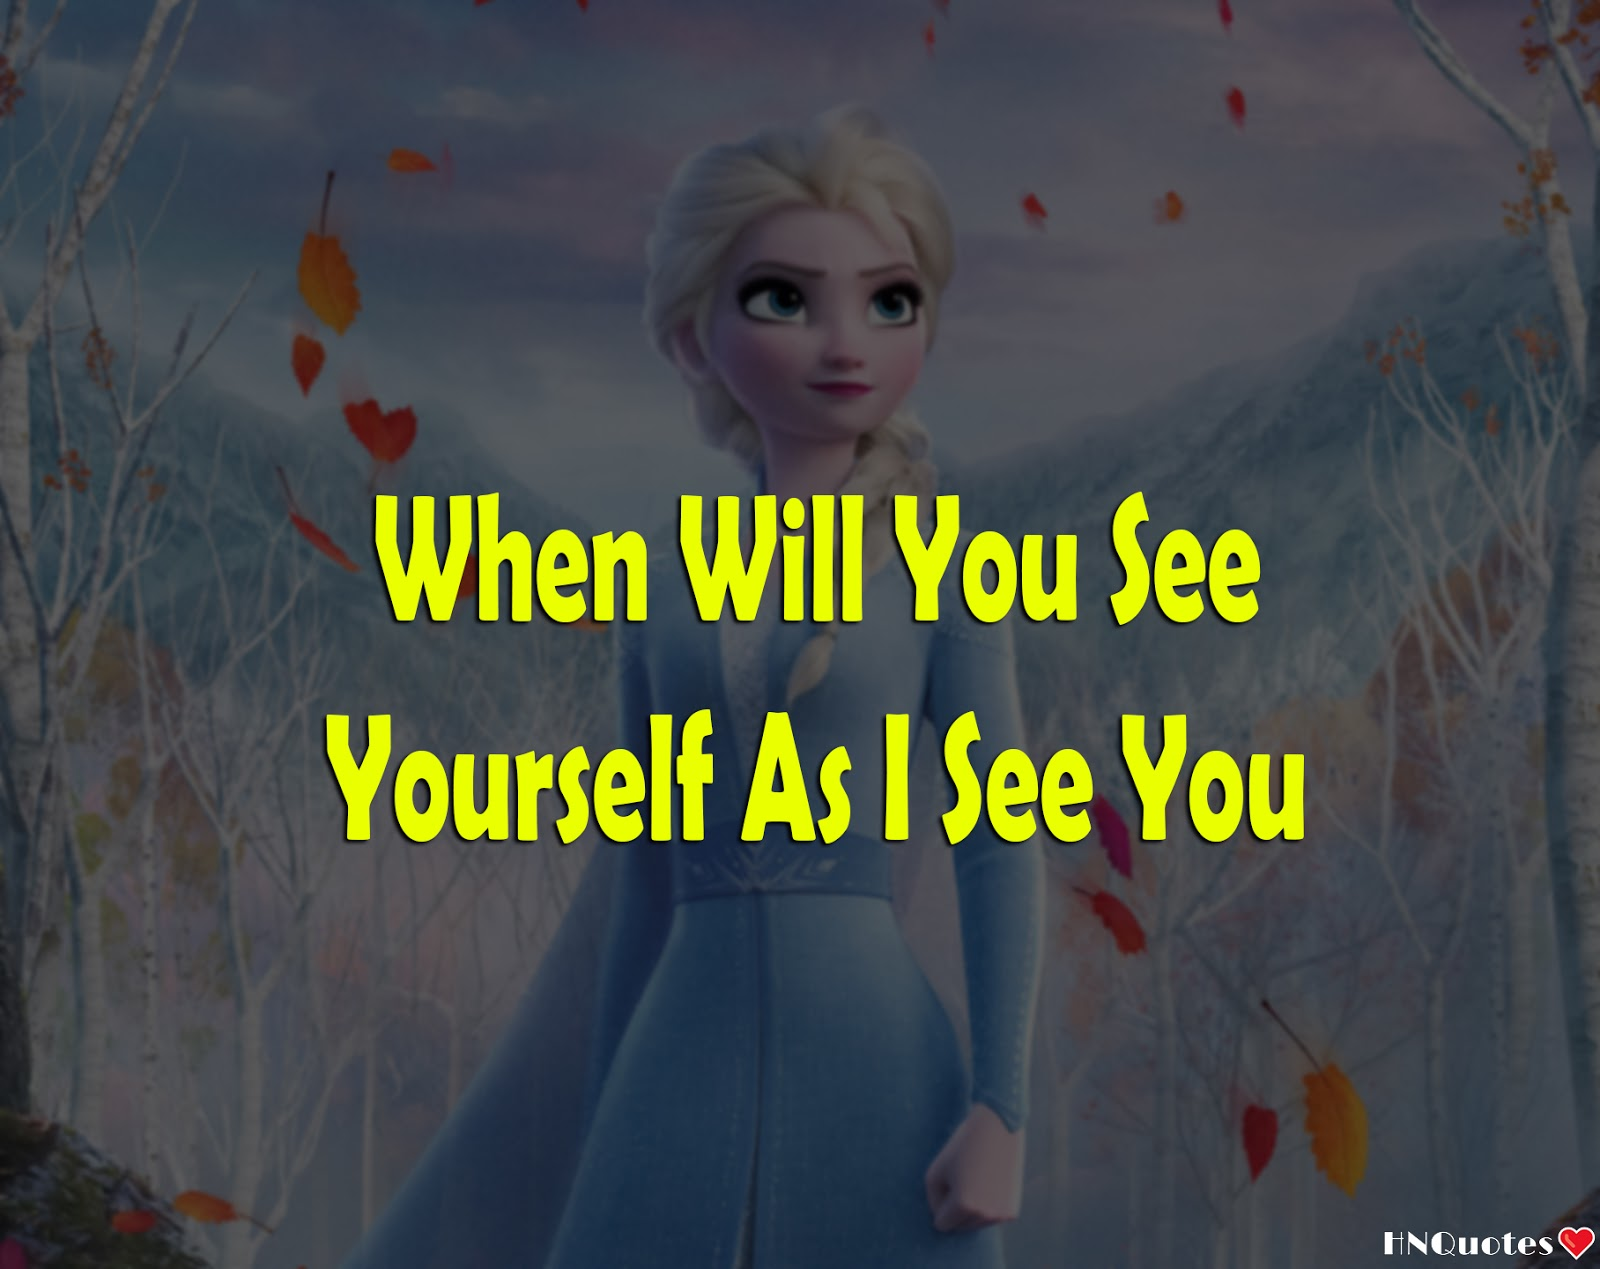 Frozen-2-Movie-Disney-Best-Quotes-Funny-Motivational-Love-Beautiful-Lines-[HNQuotes]